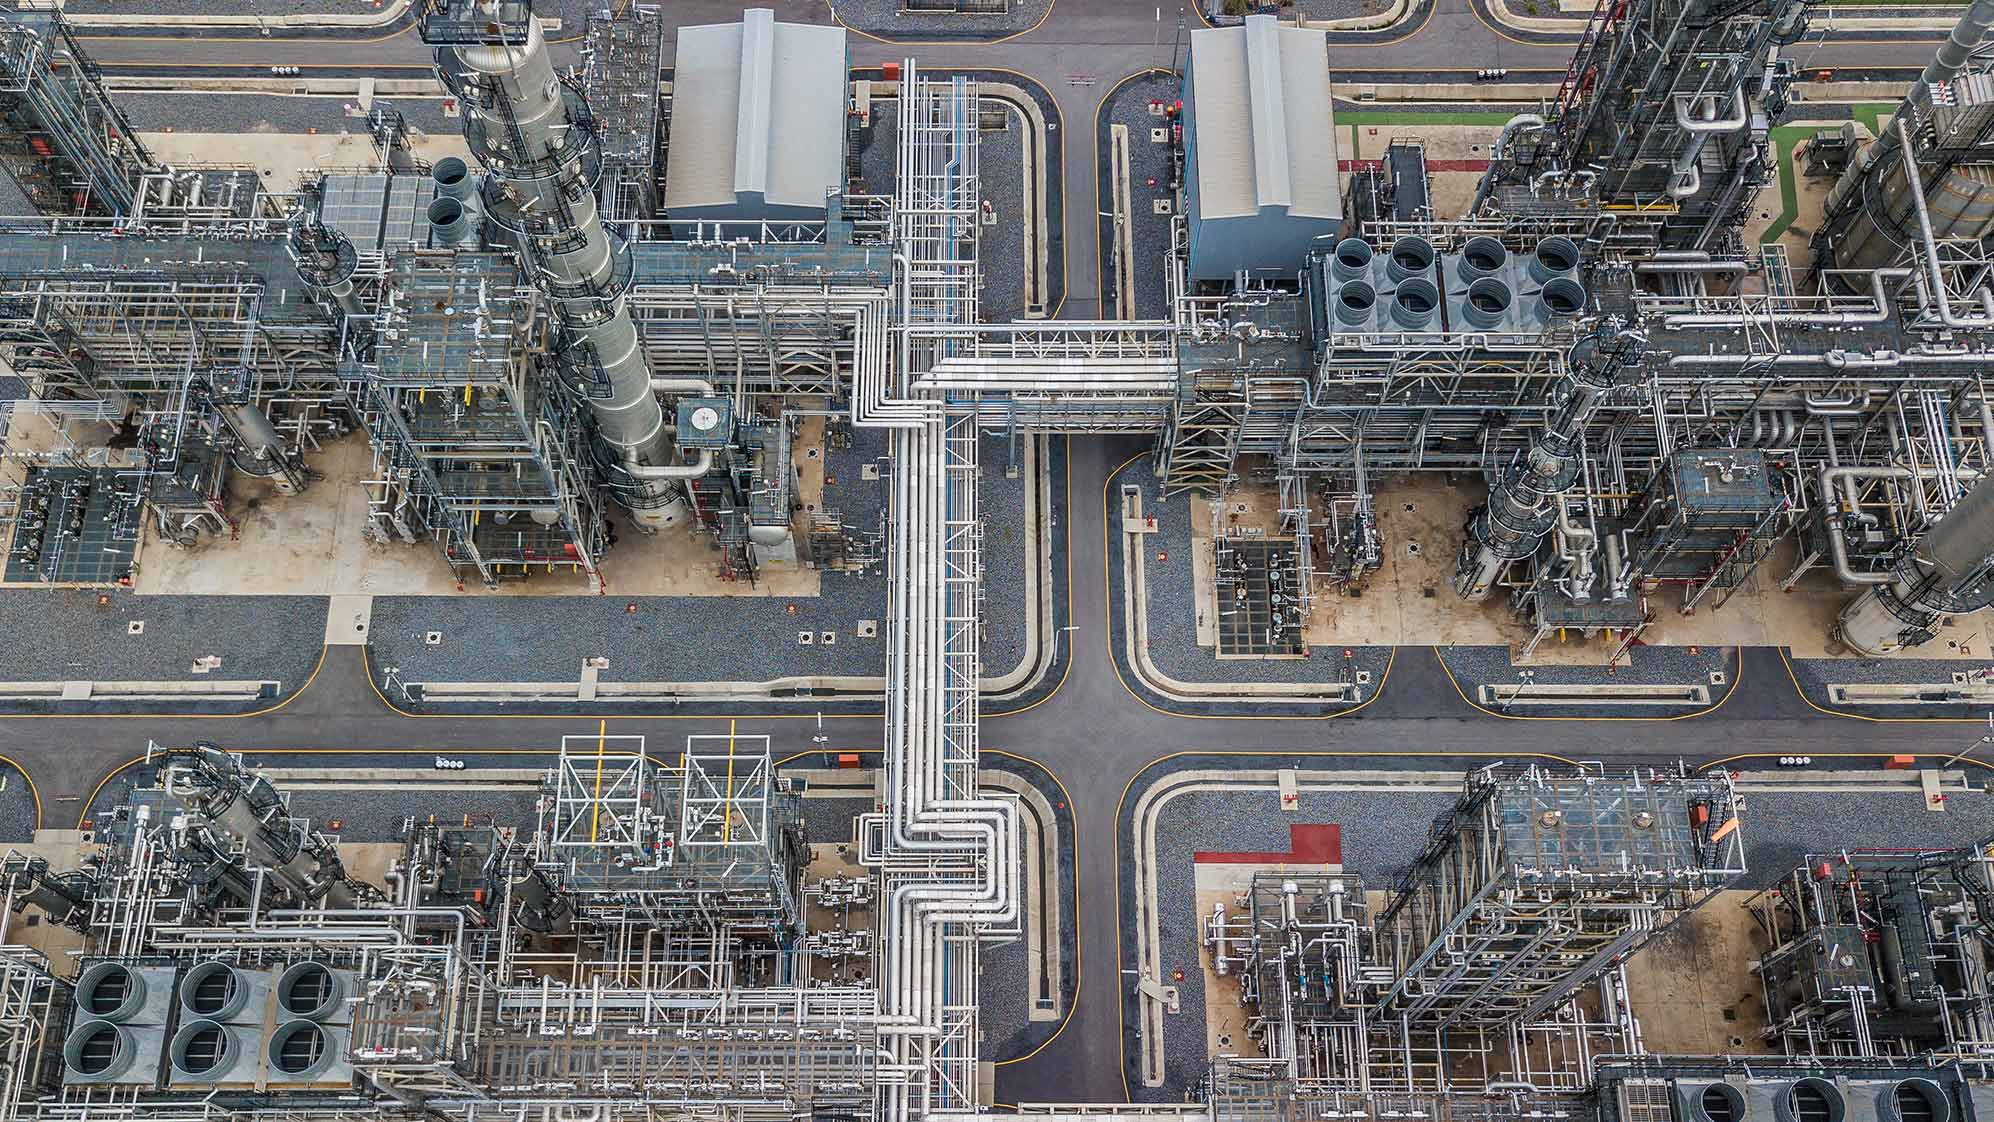 Overhead image of a large refinery